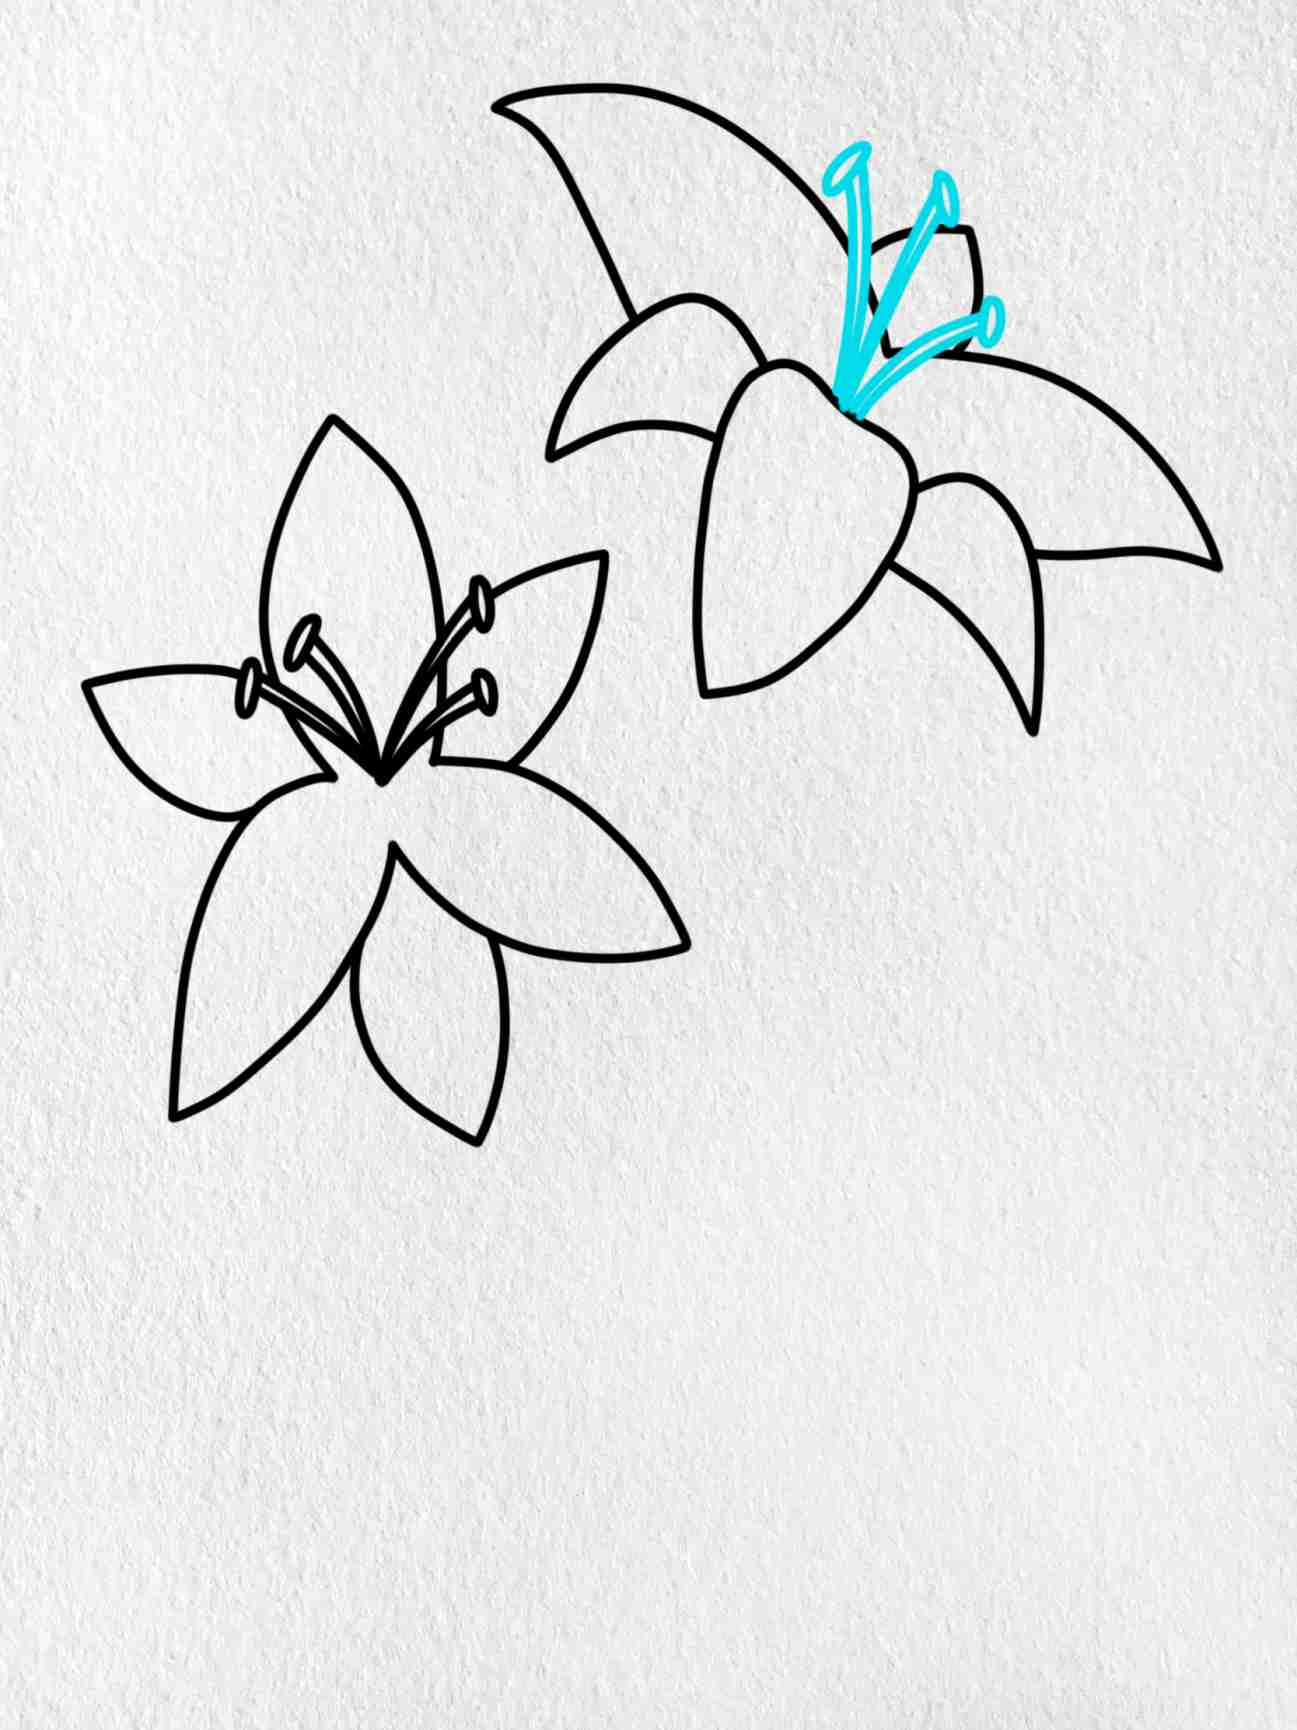 How To Draw A Lily: Step 6